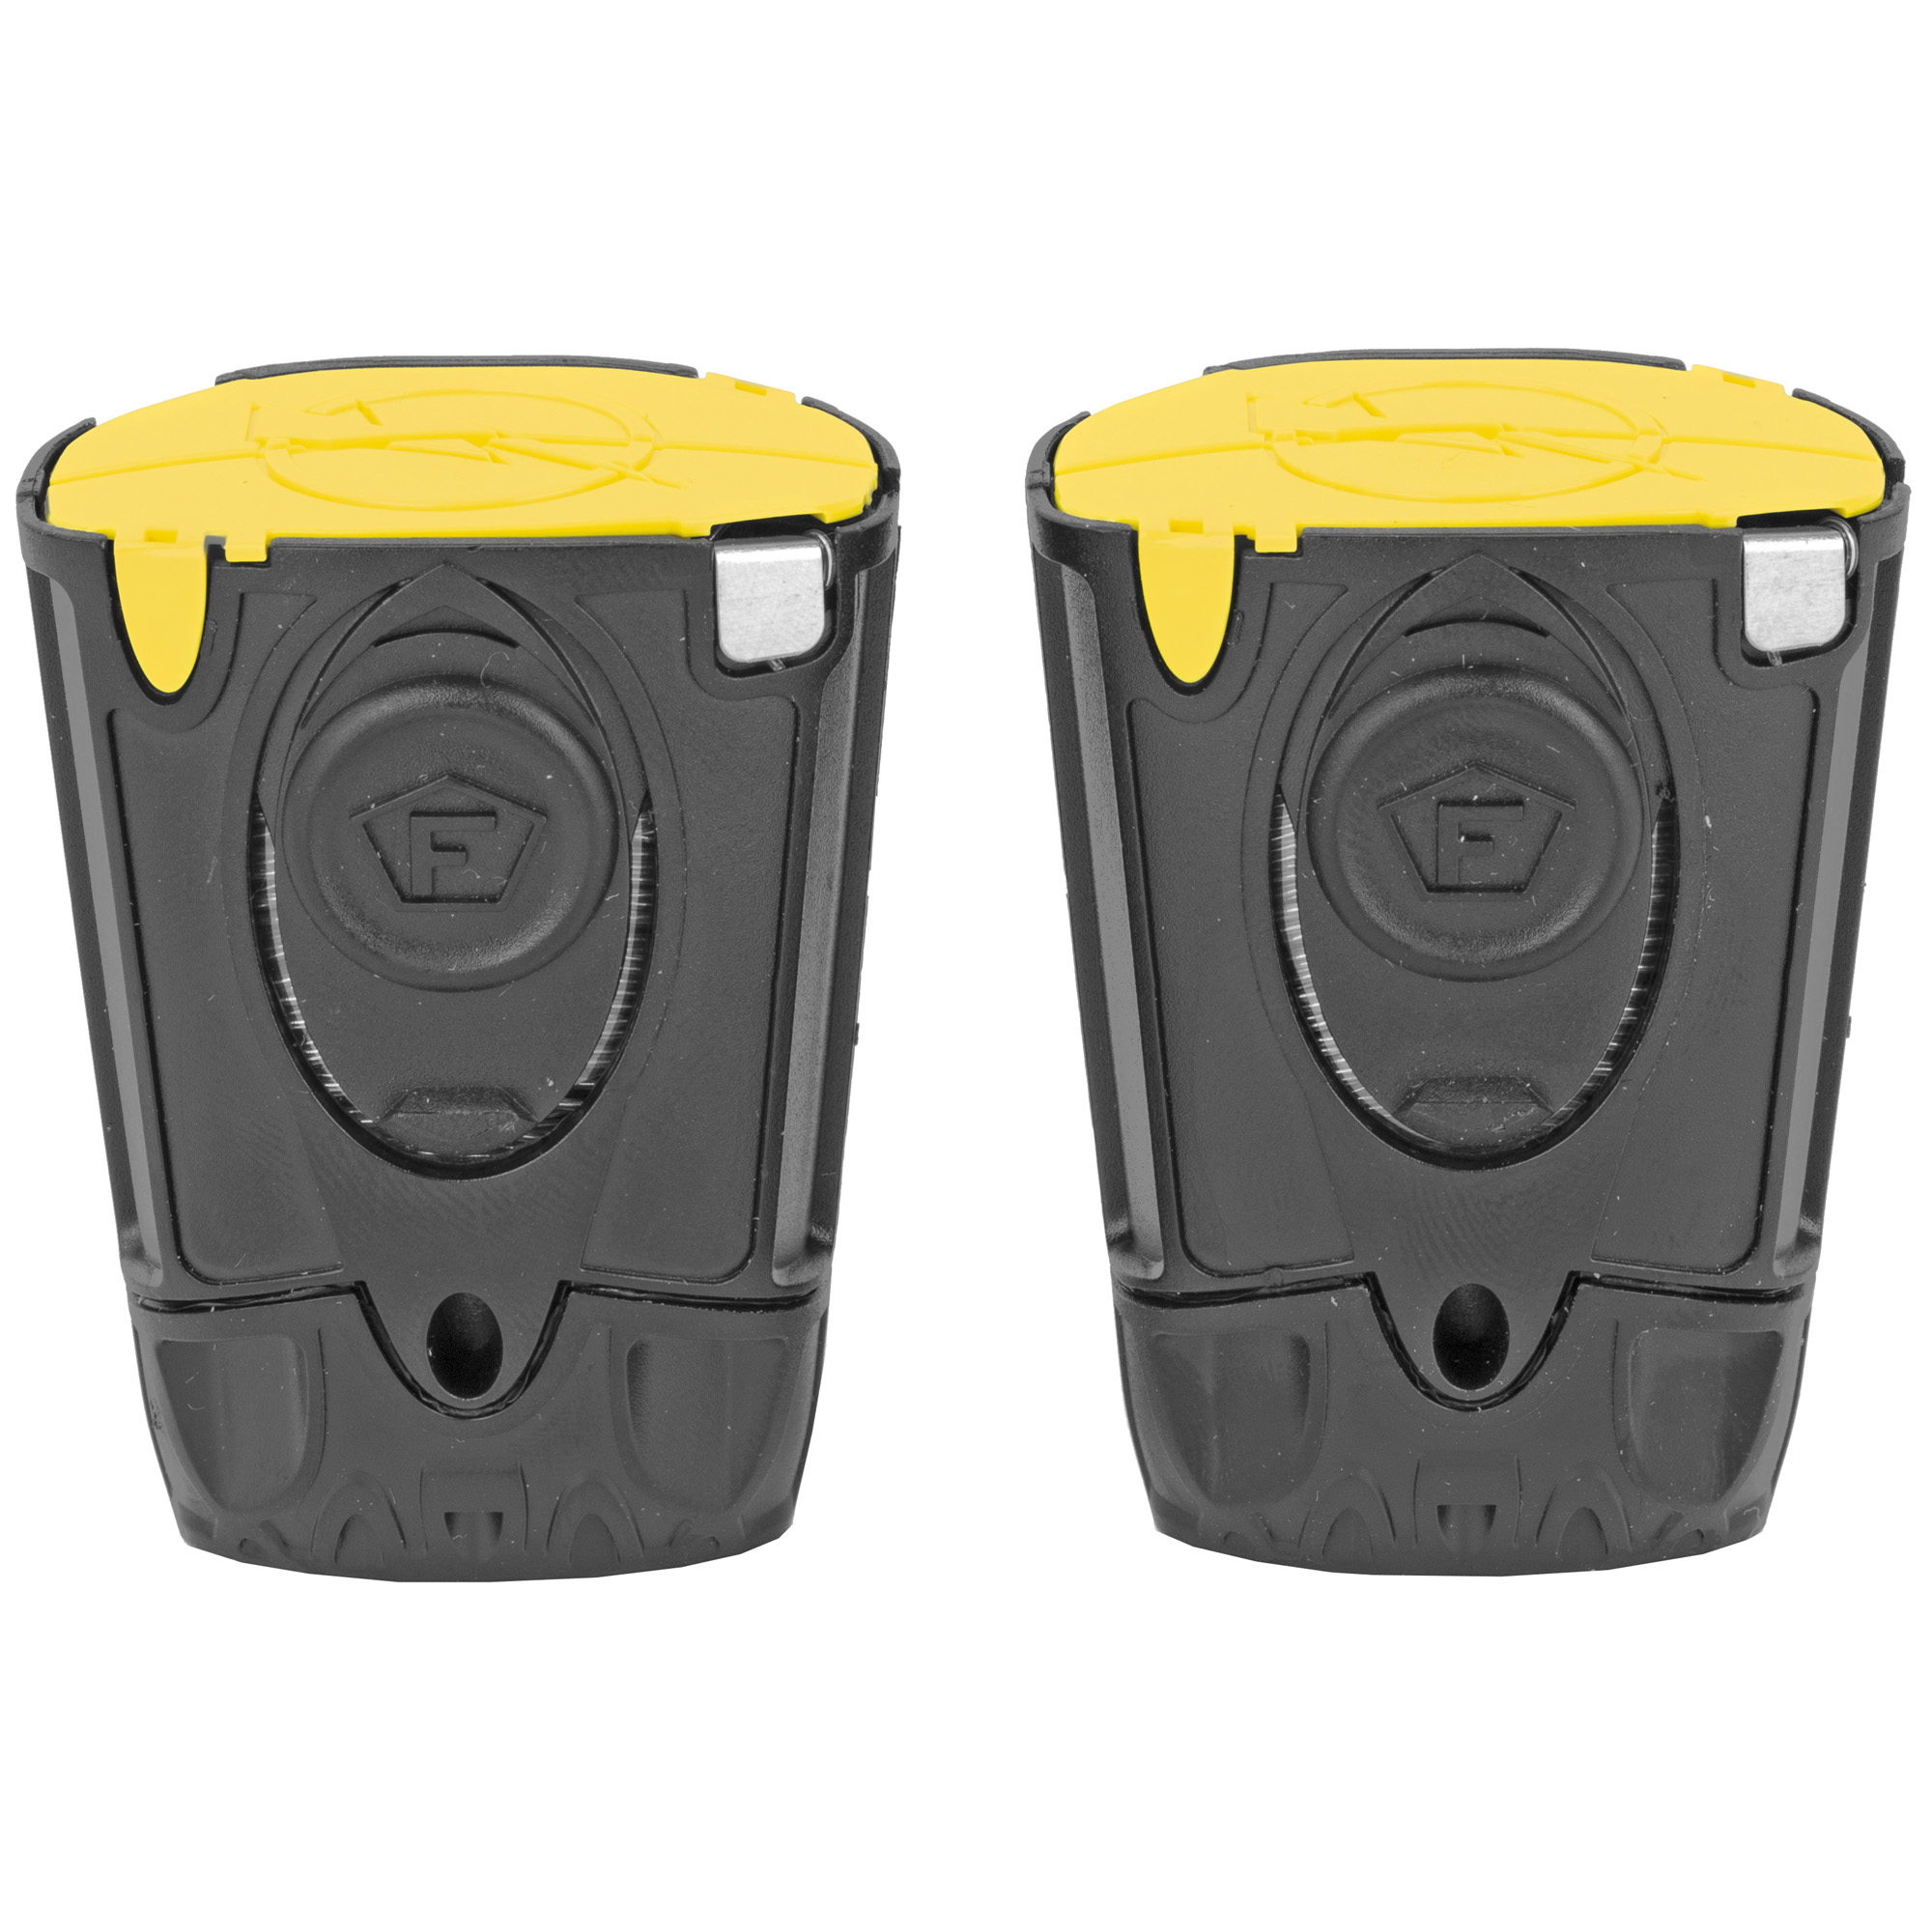 """Keep extra live cartridges stocked in case of depletion so you are never without protection. This two pack of cartridges is compatible with TASER Bolt"""" Pulse+"""" or Pulse devices."""